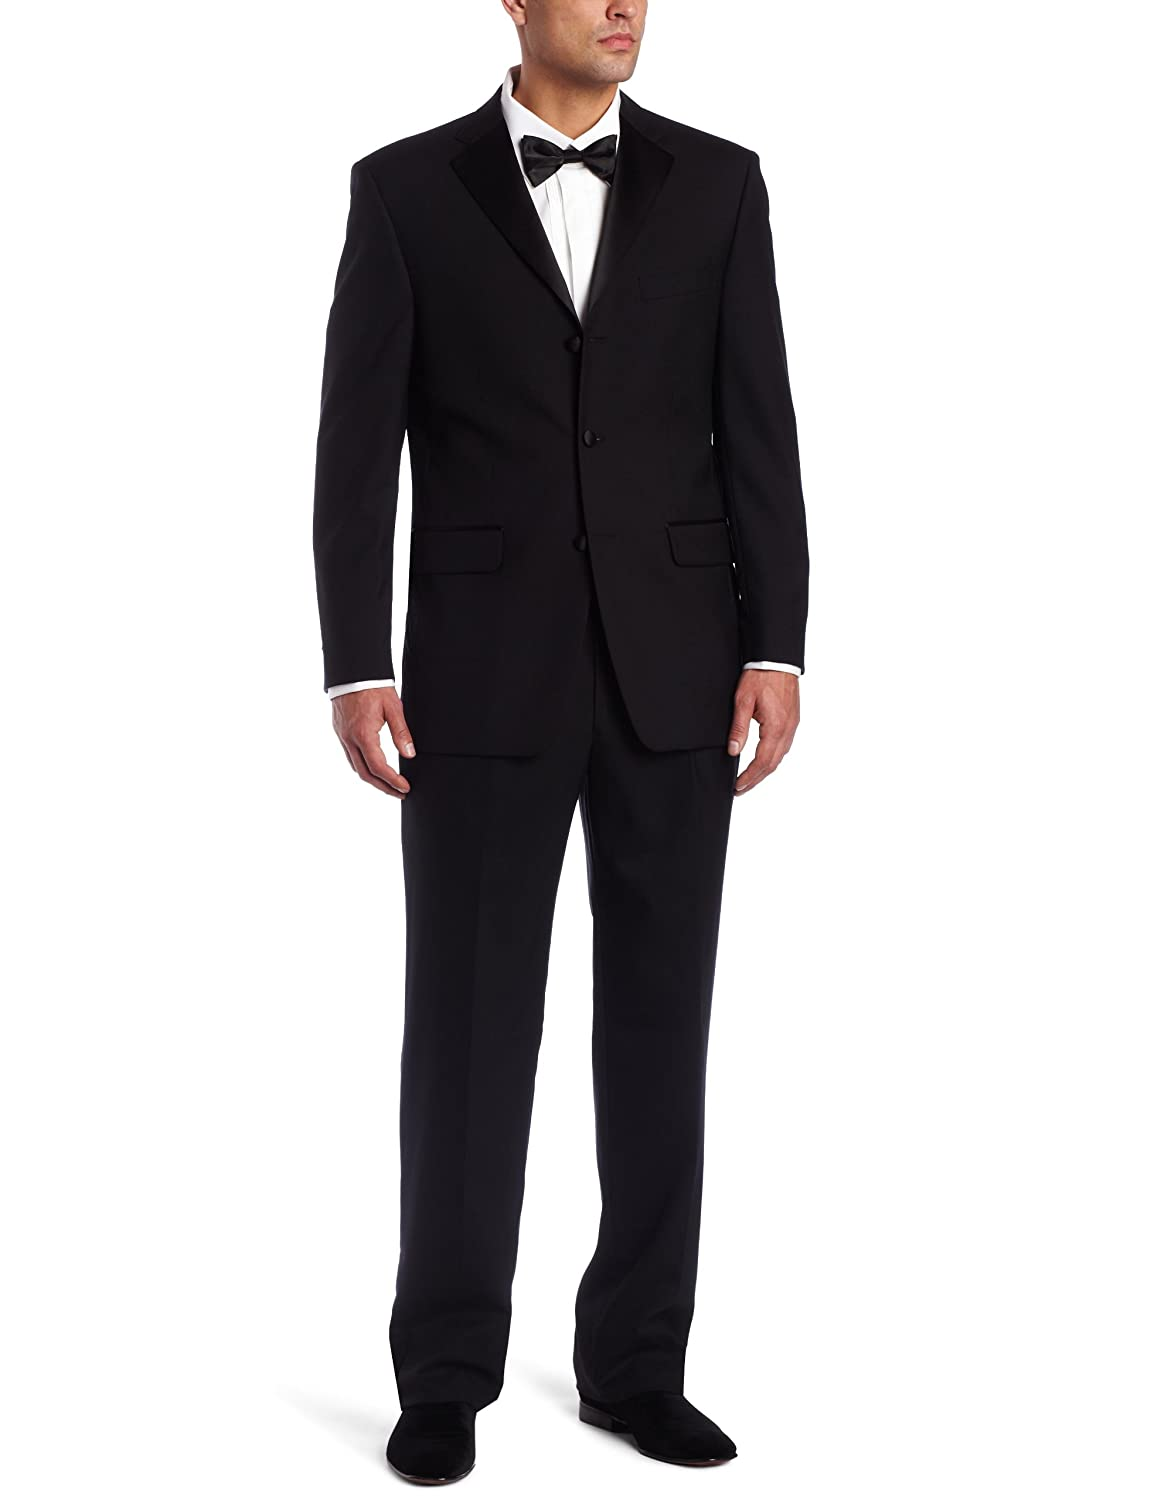 Jones New York Men's 3 Button Non-Vent Double Pleated Tuxedo, Black, 40 Regular